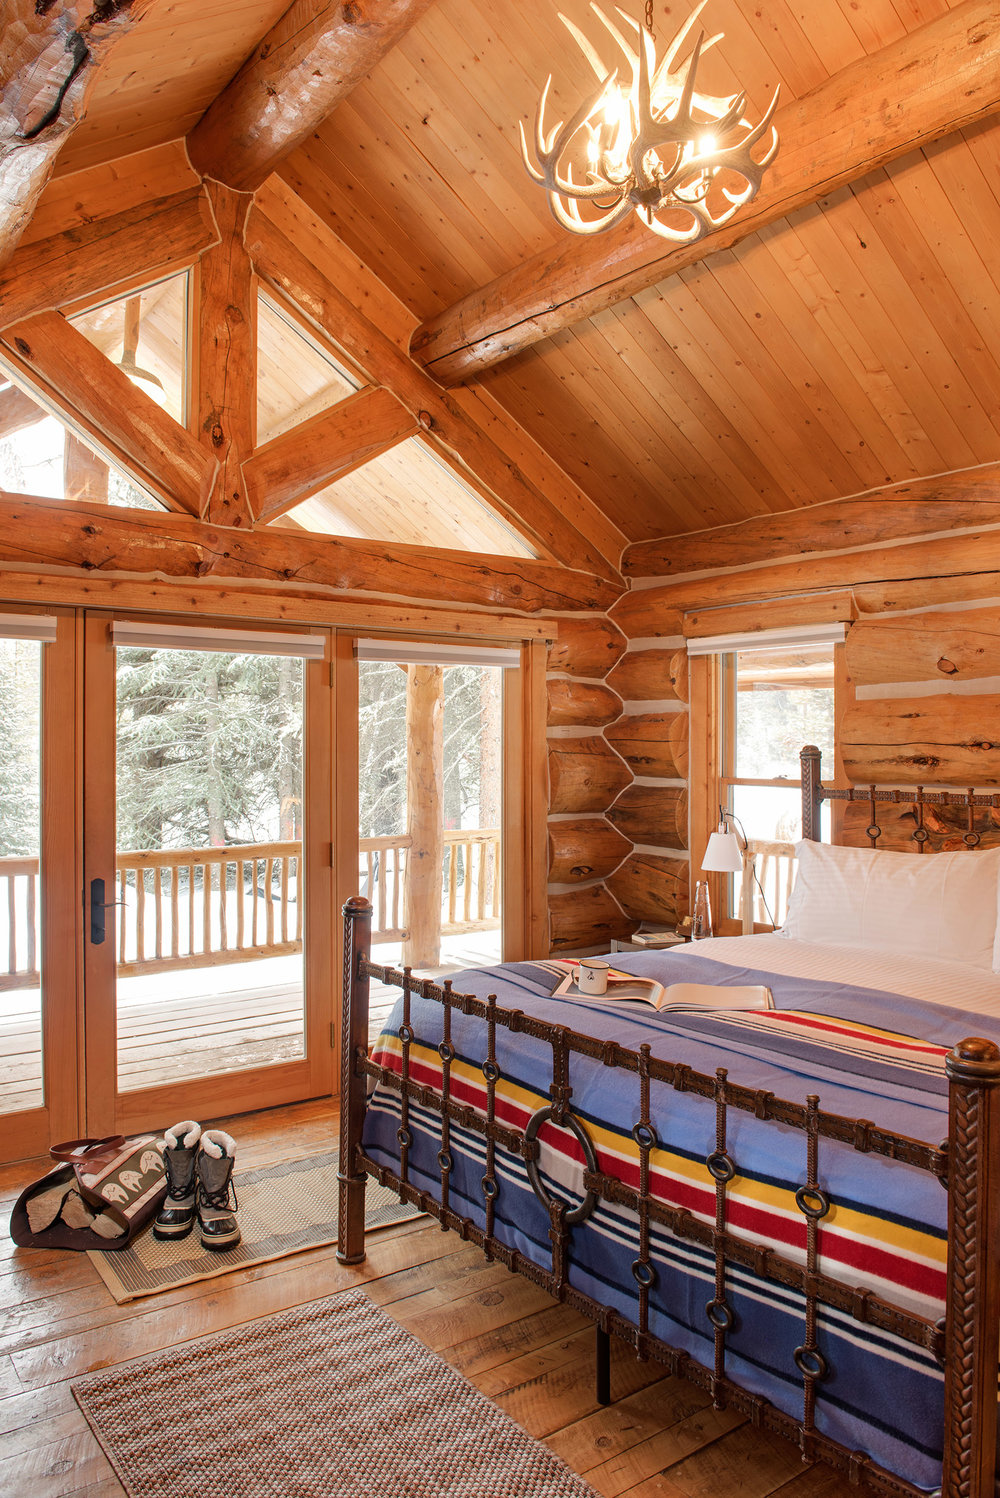 Nothing says rustic like a quaint little cabin on the river. The custom woodwork and setting really create that cozy, rustic feel. Located at  Yellowstone Club .